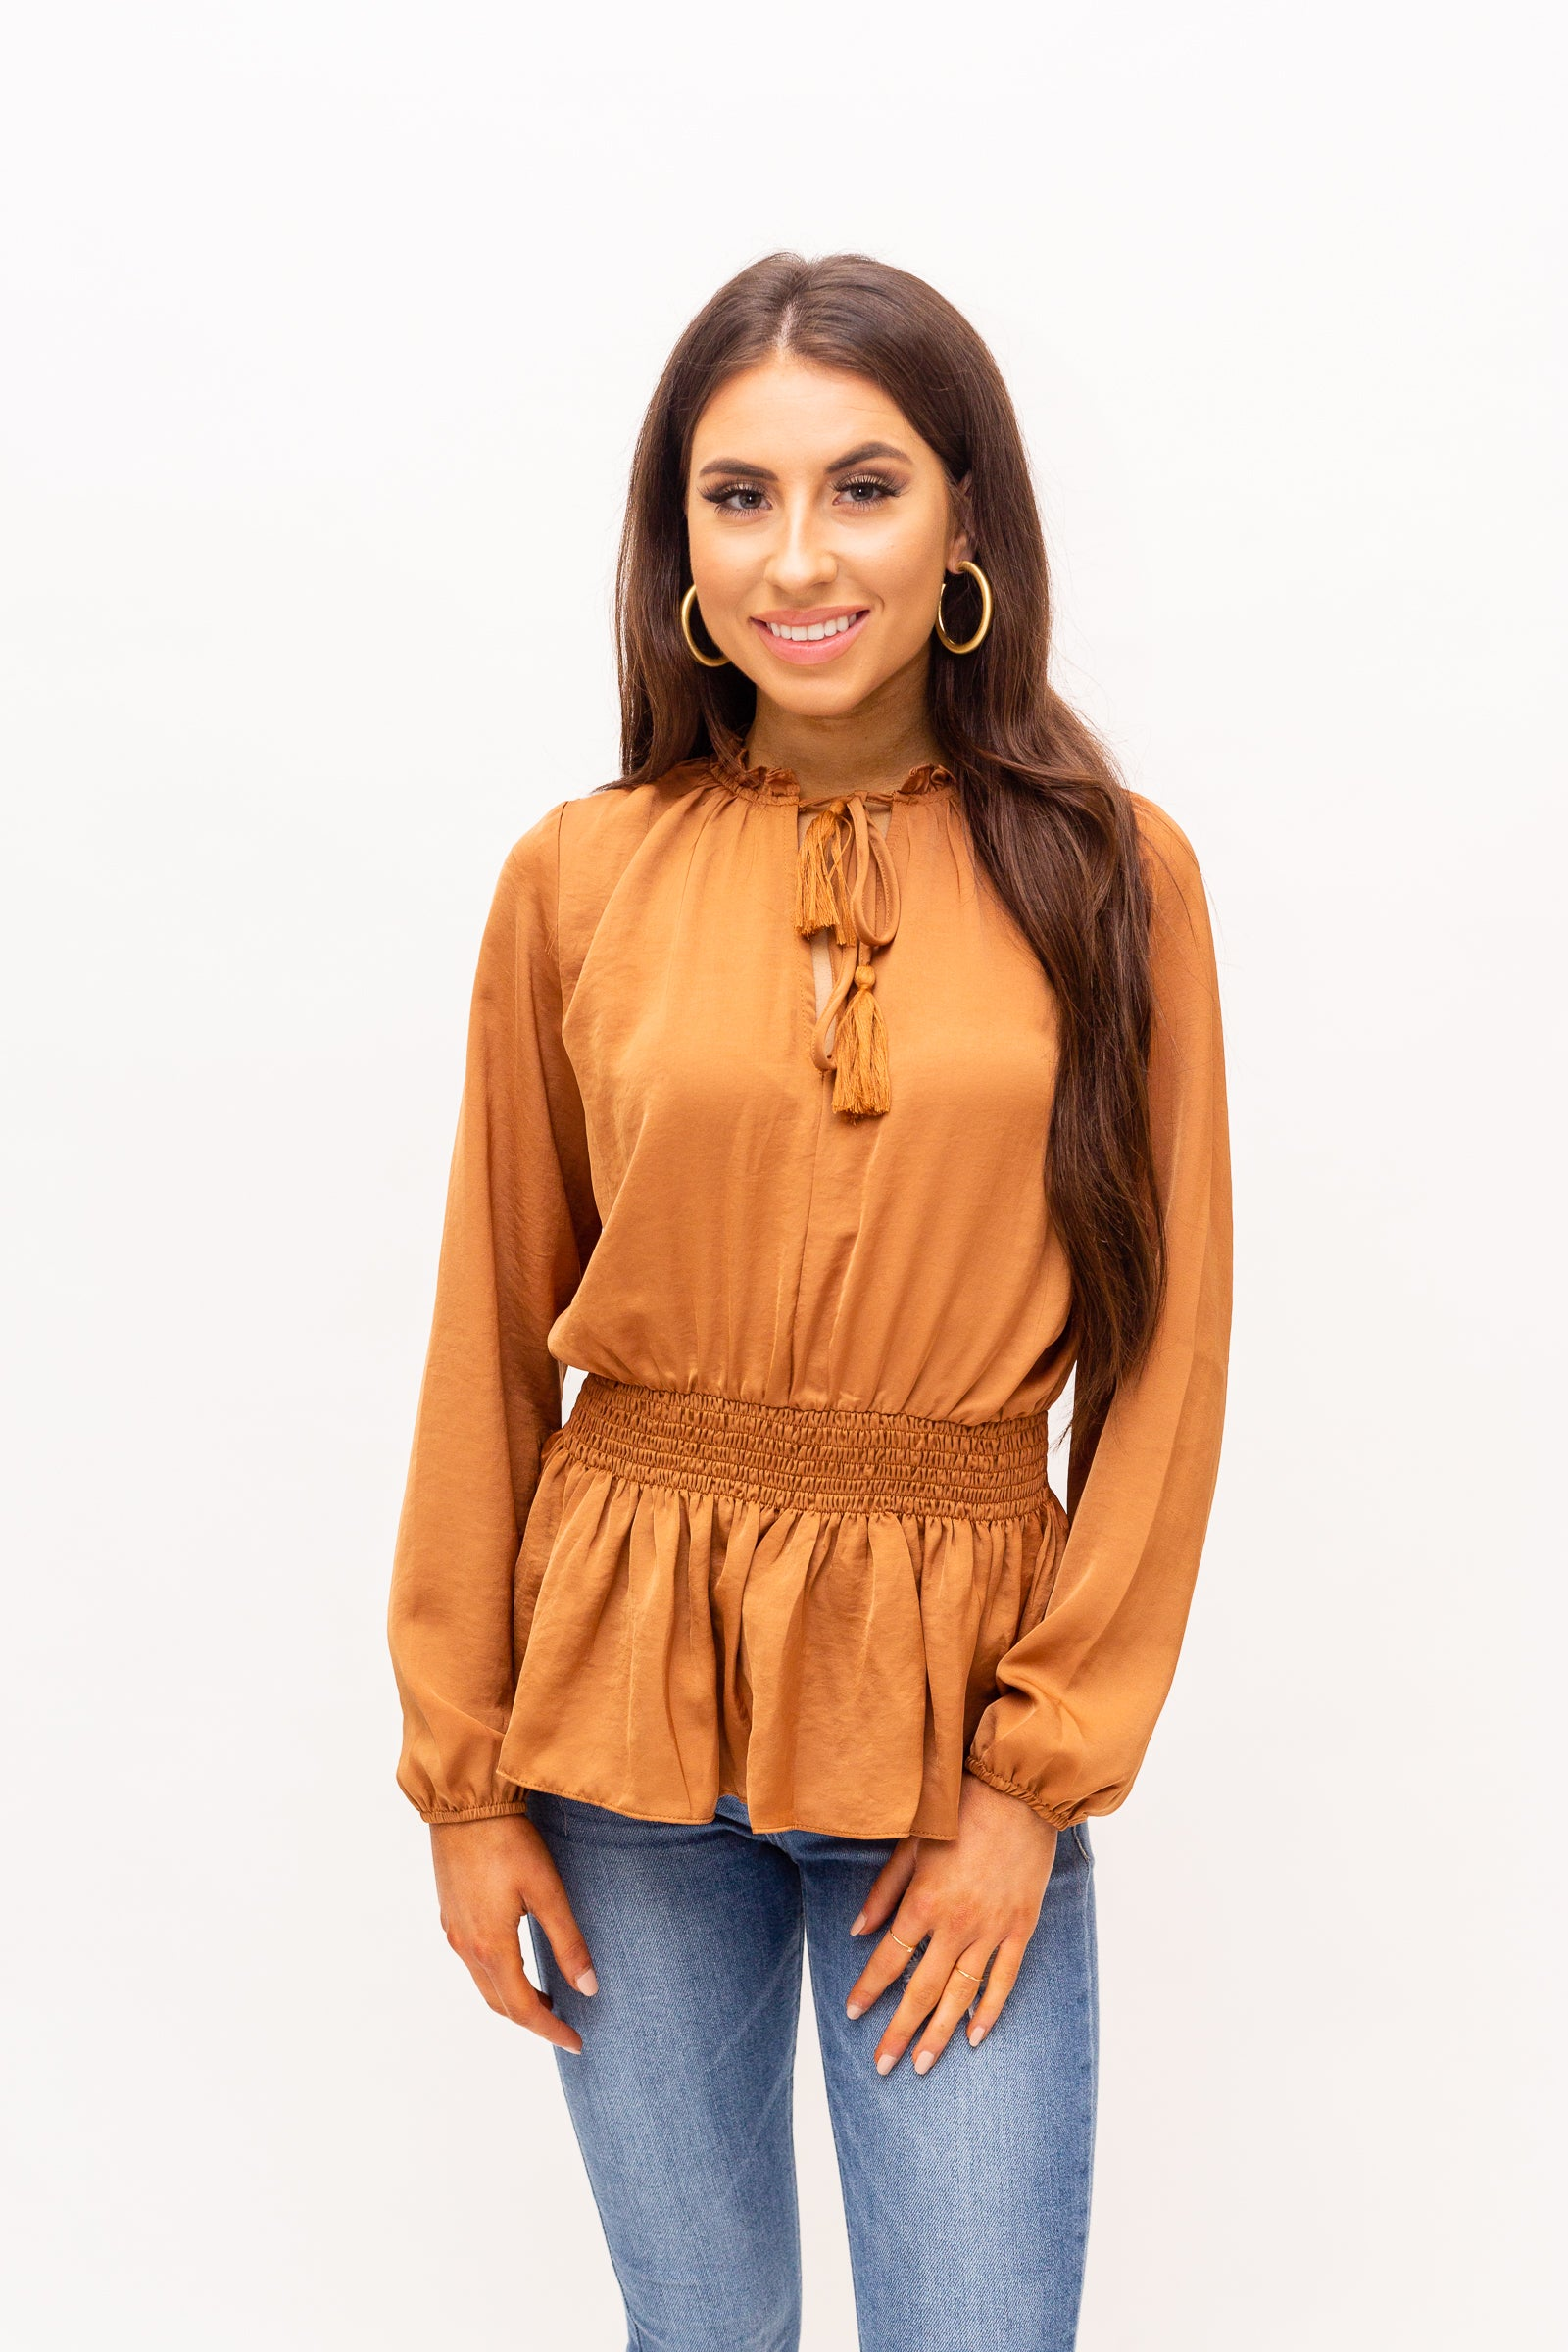 Long elastic cuffed sleeves that attach to a high ruffle v-neckline with a tassel tie that could be secured at the neck on an oversized relaxed bodice with a smocked waist and a peplum style hem.